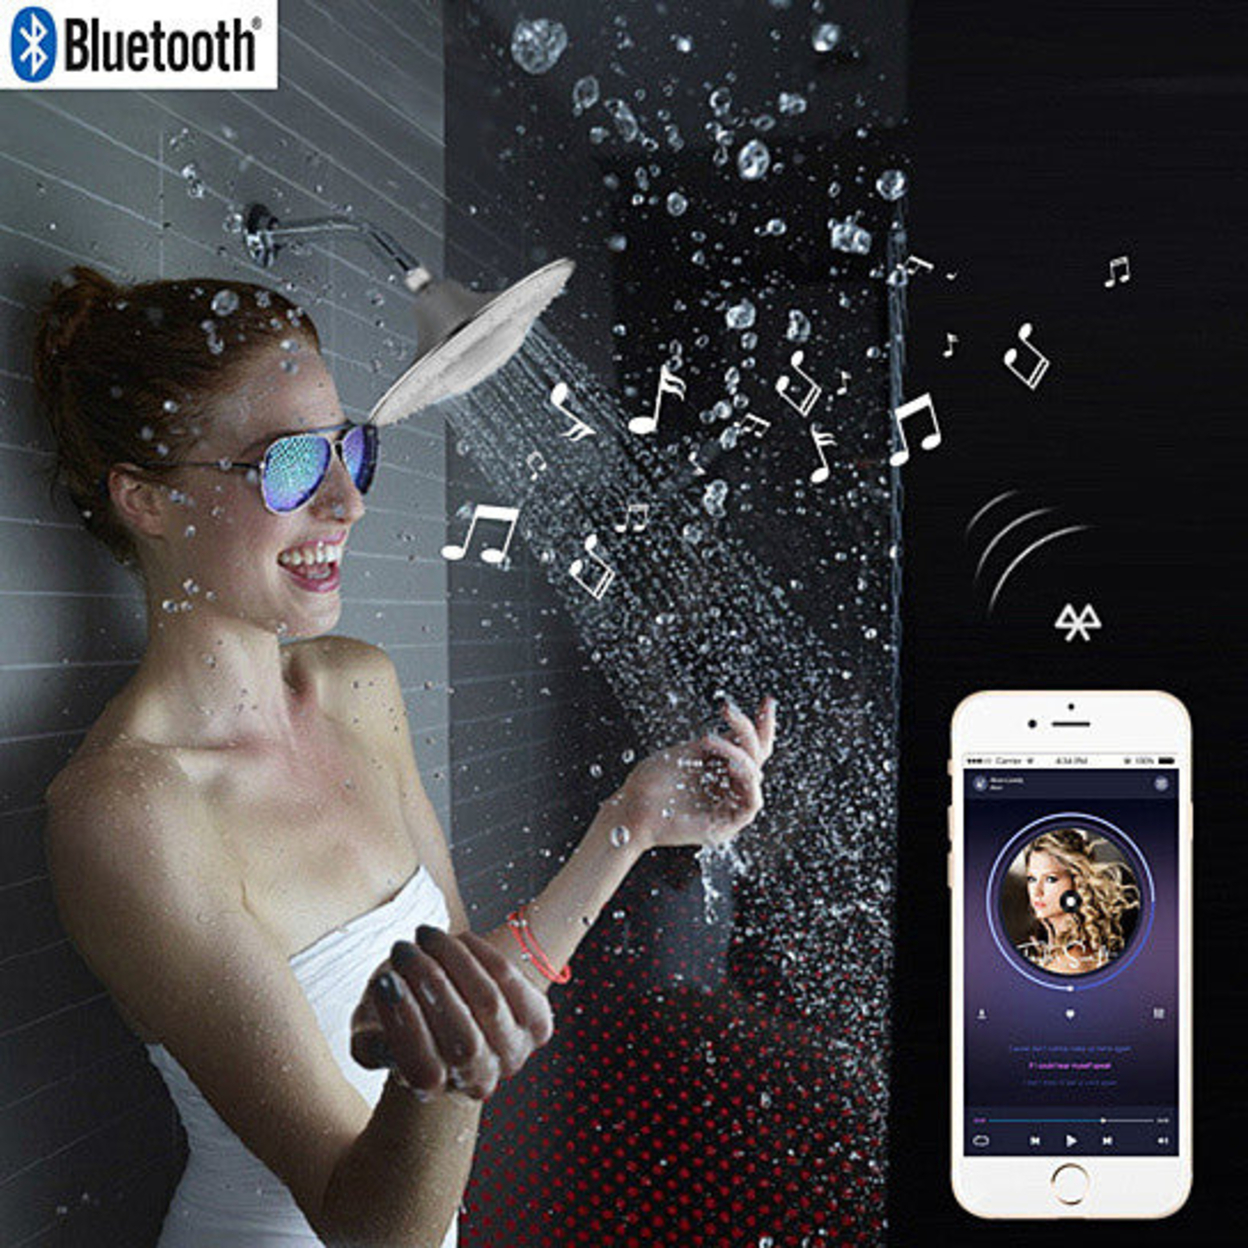 Rain Maker Showerhead and Bluetooth Speaker 595f3a3e6d88eb5c8c325c86